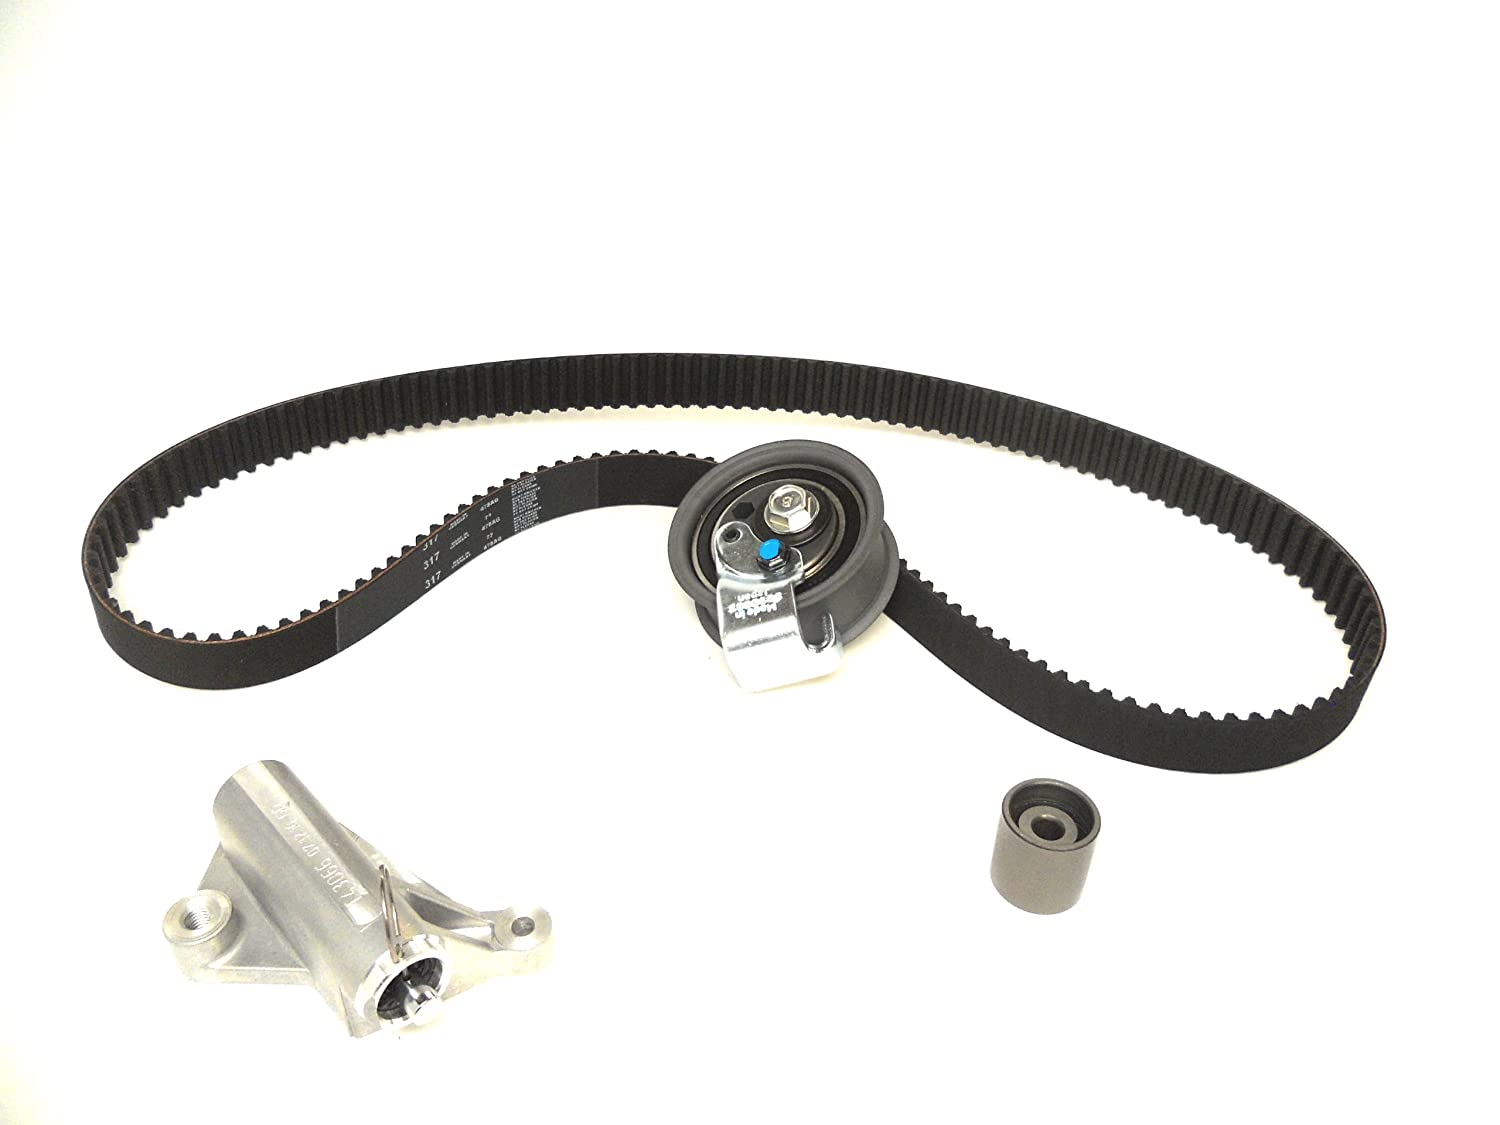 and 2 Tensioners ACDelco TCK317 Professional Timing Belt Kit with Idler Pulley 2 Belts